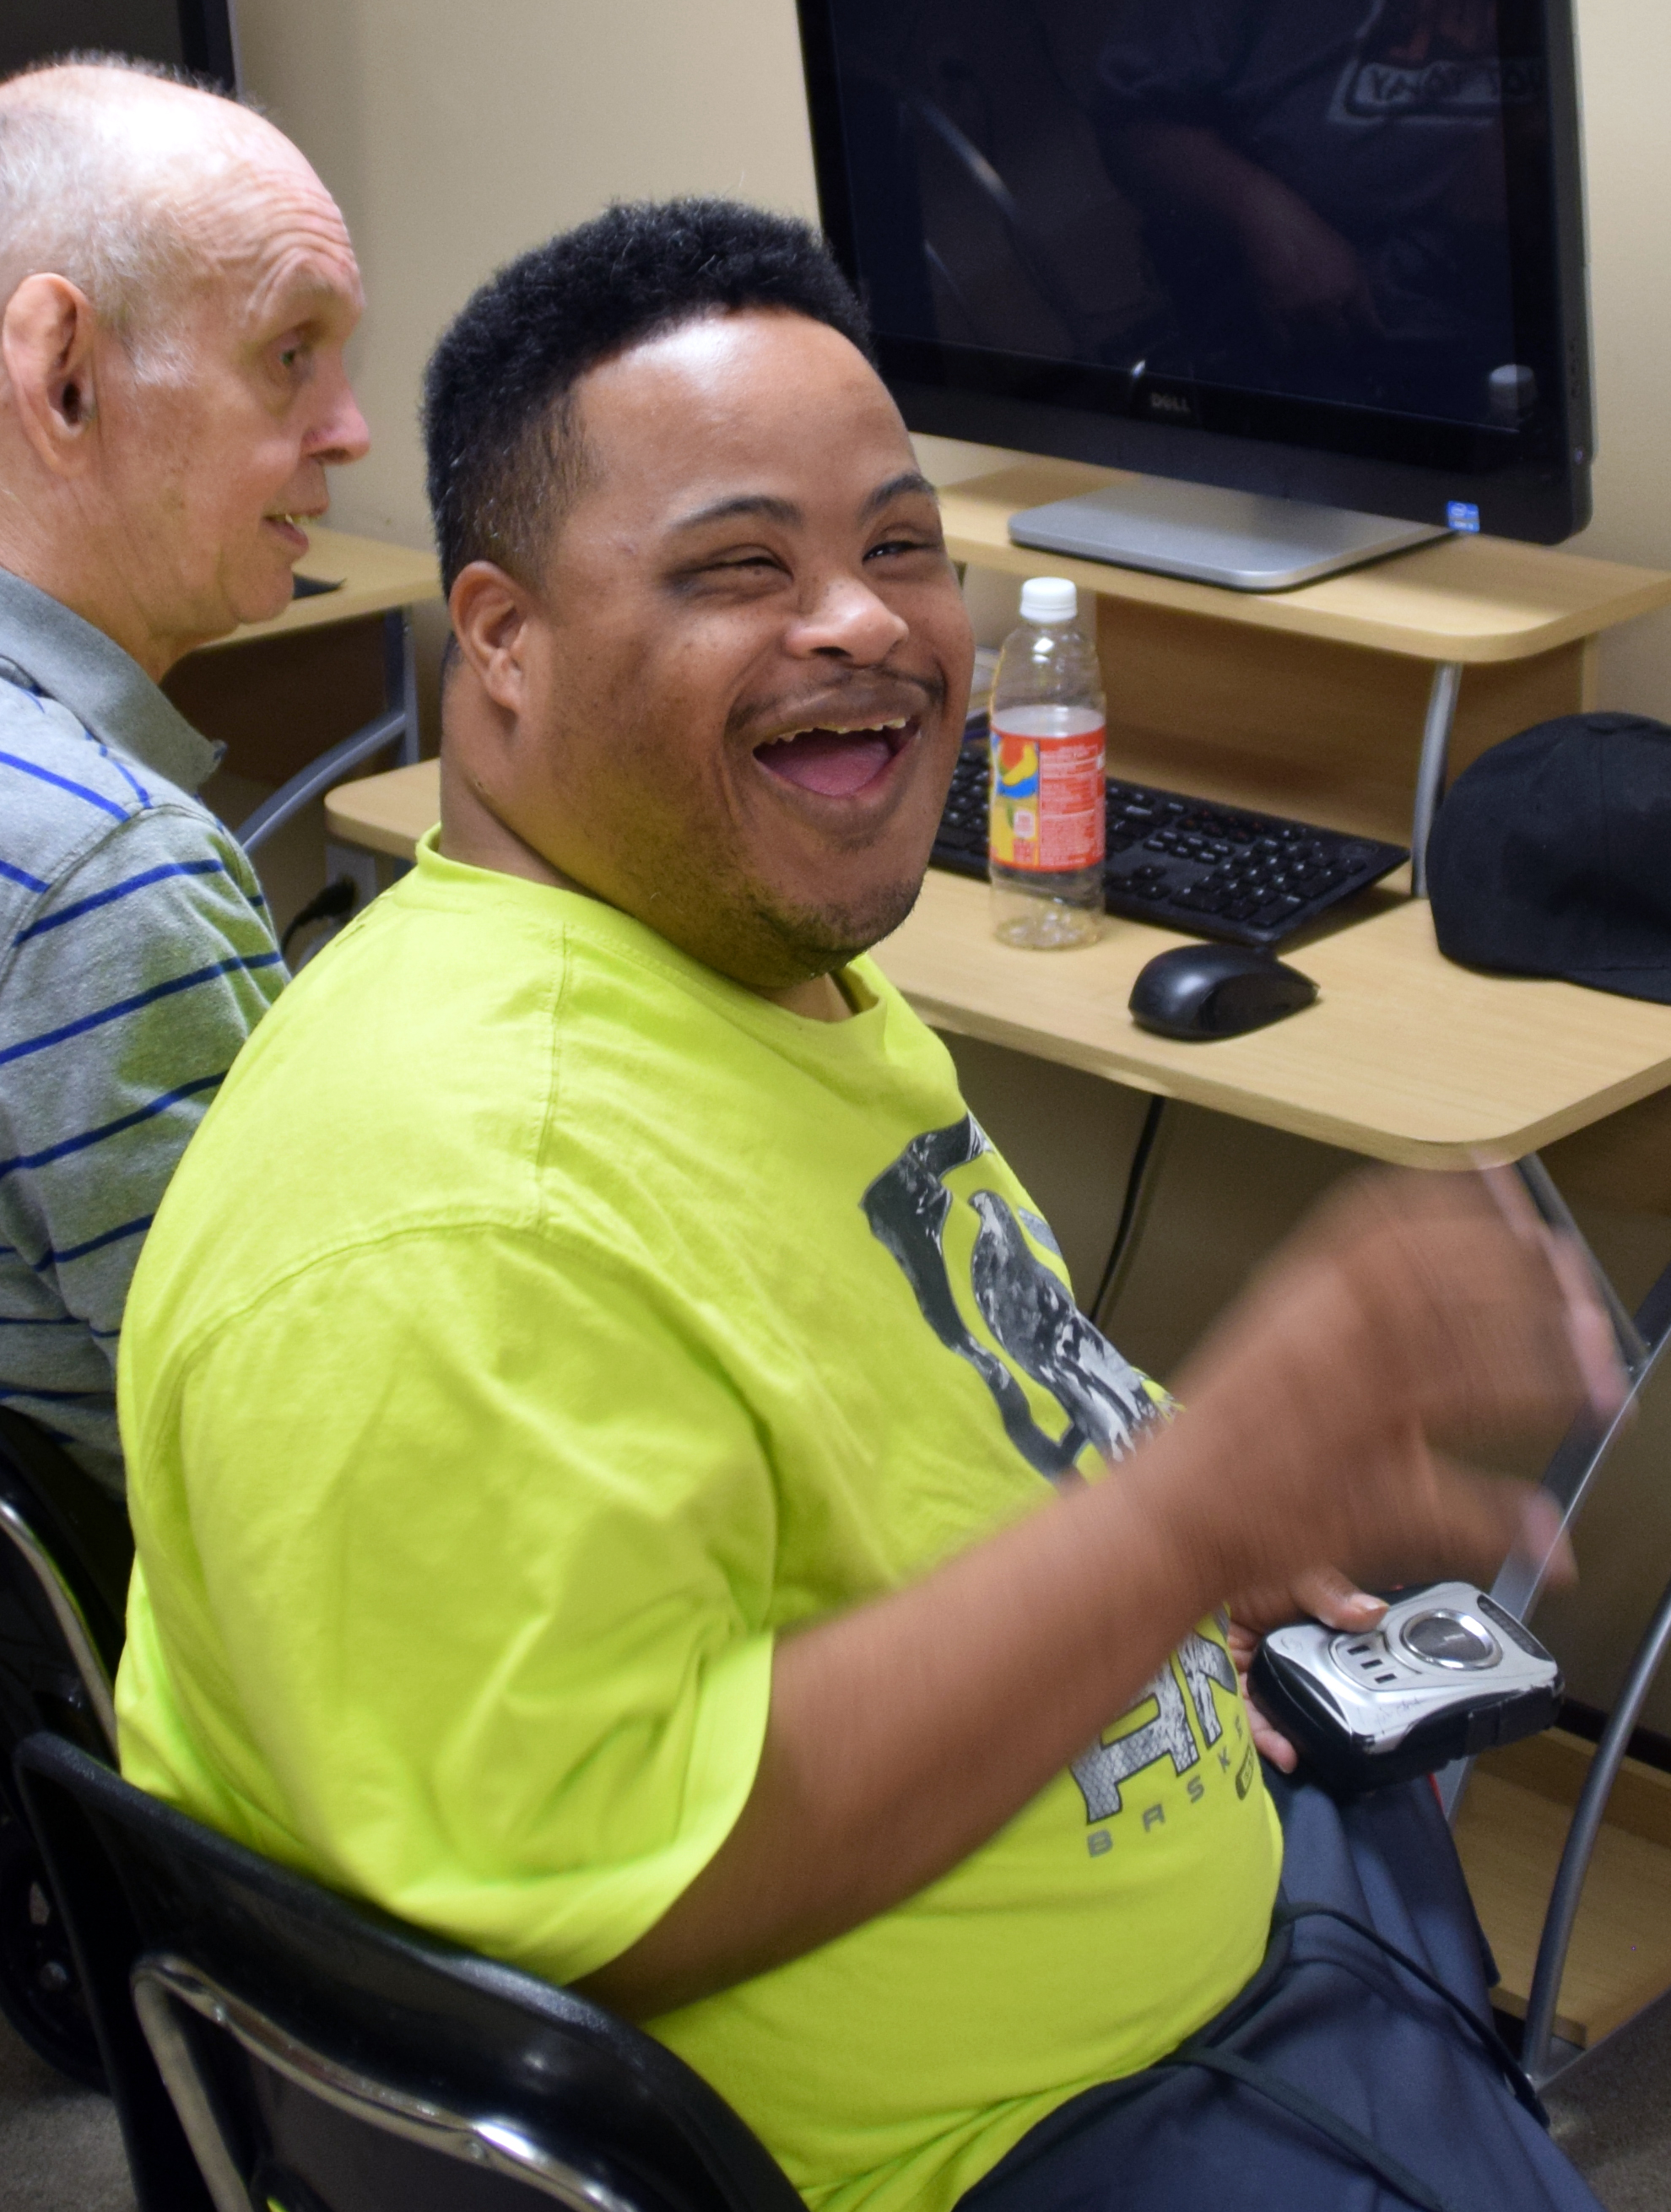 A disabled man looking at the camera and smiling in Burlington, NJ